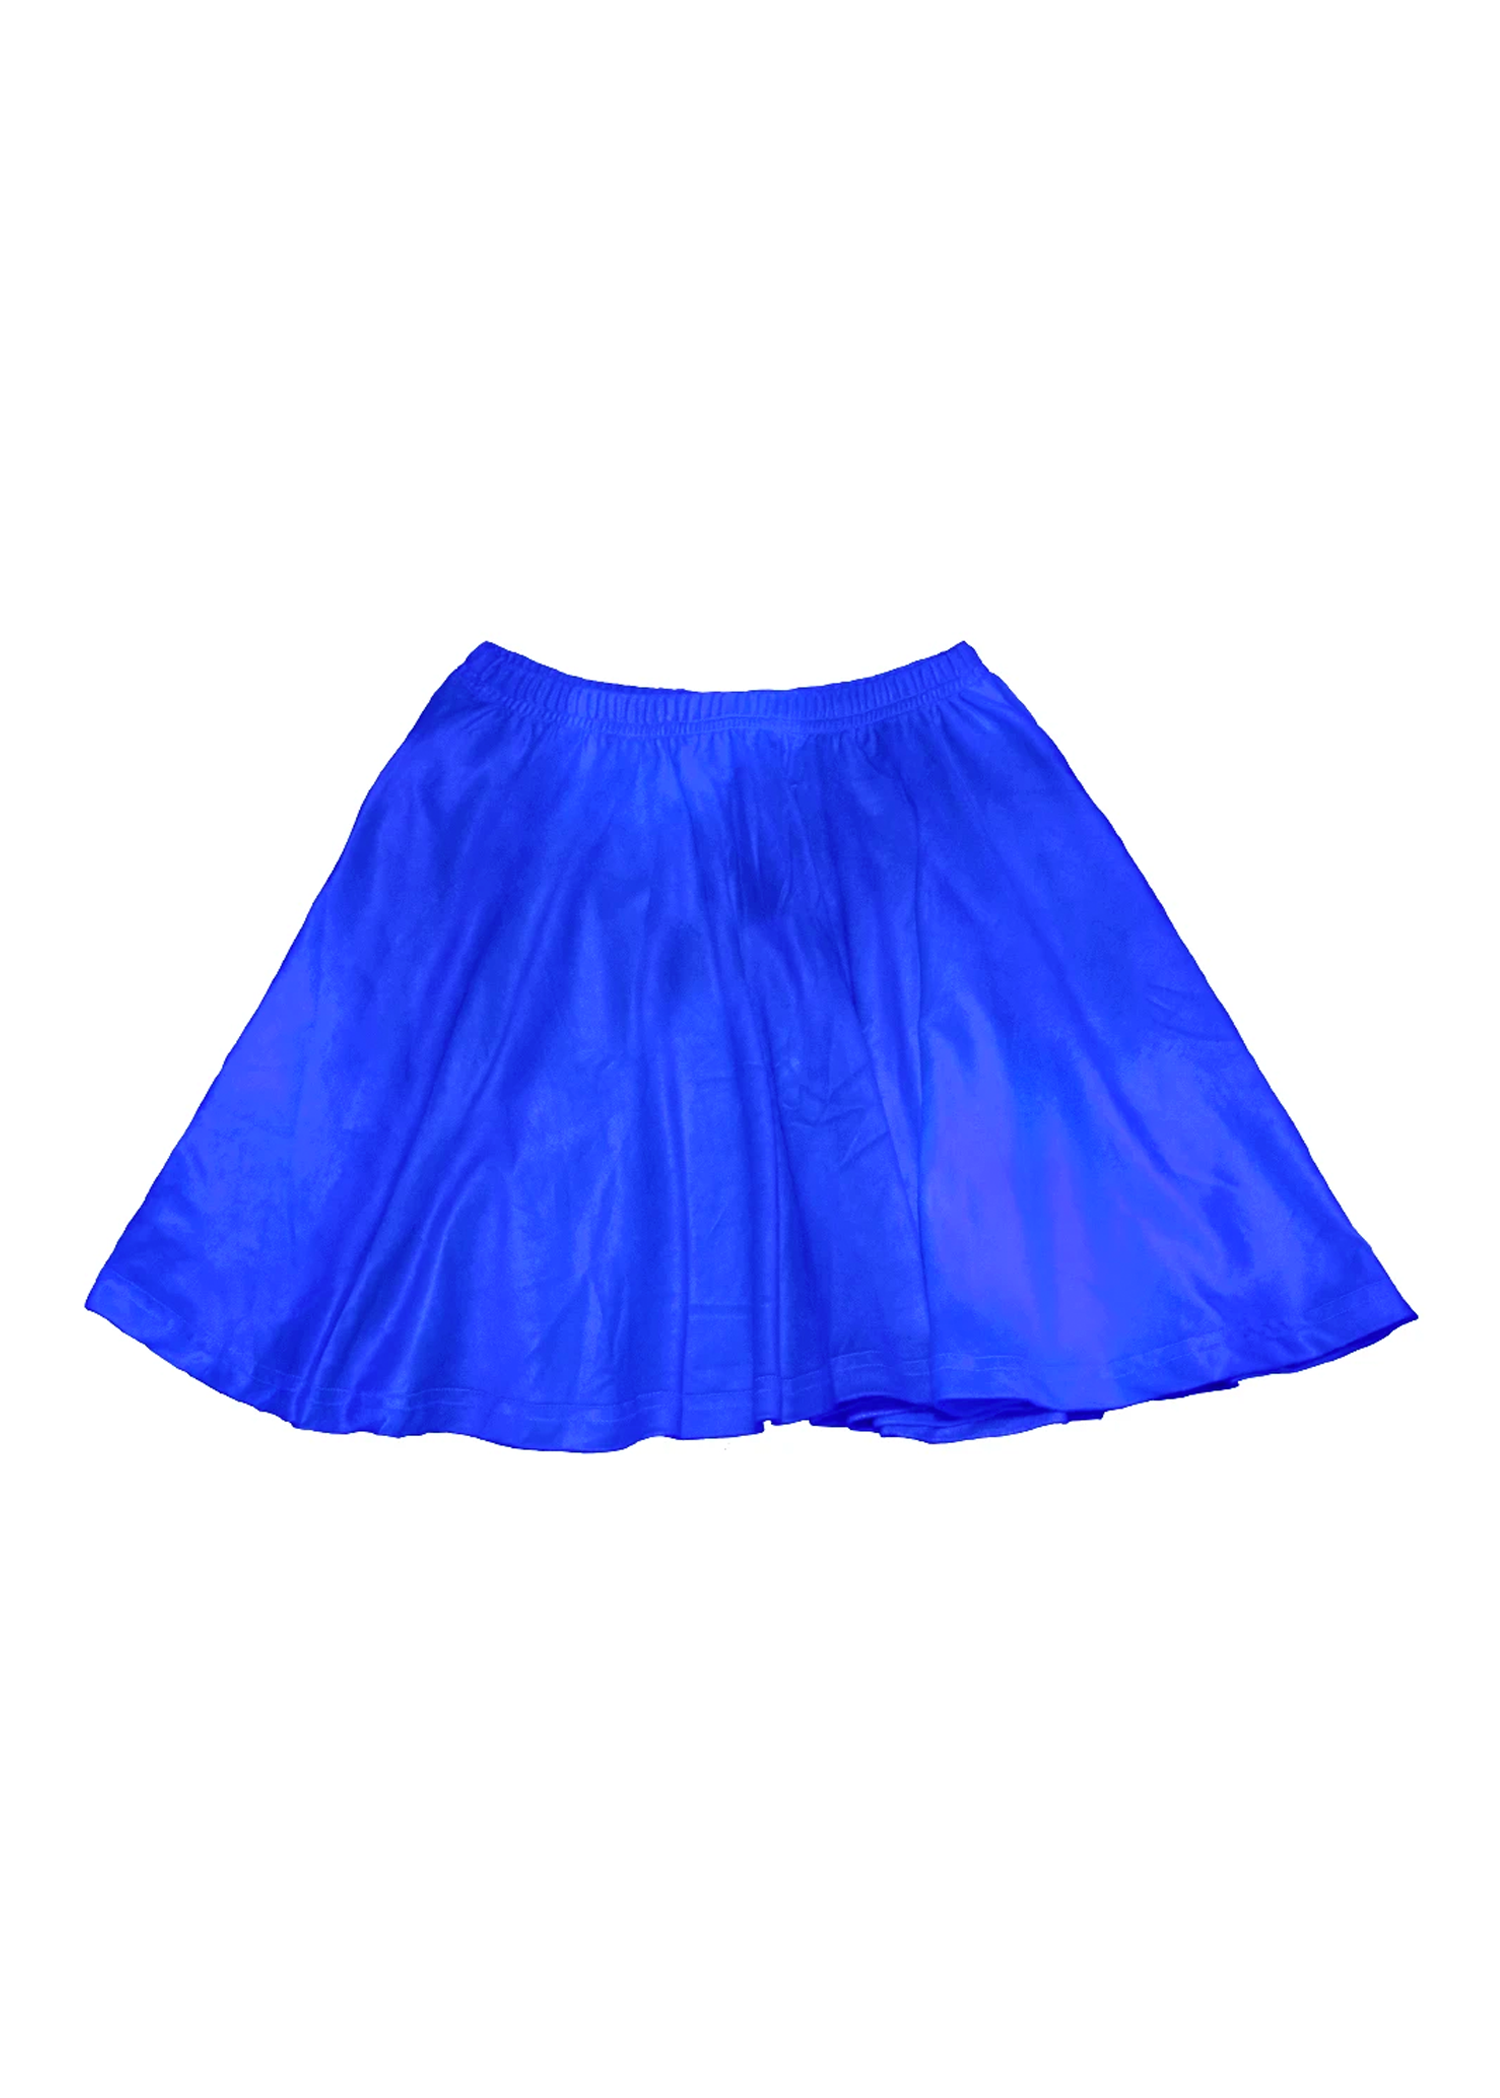 velvet skater skirt in bluescreen blue